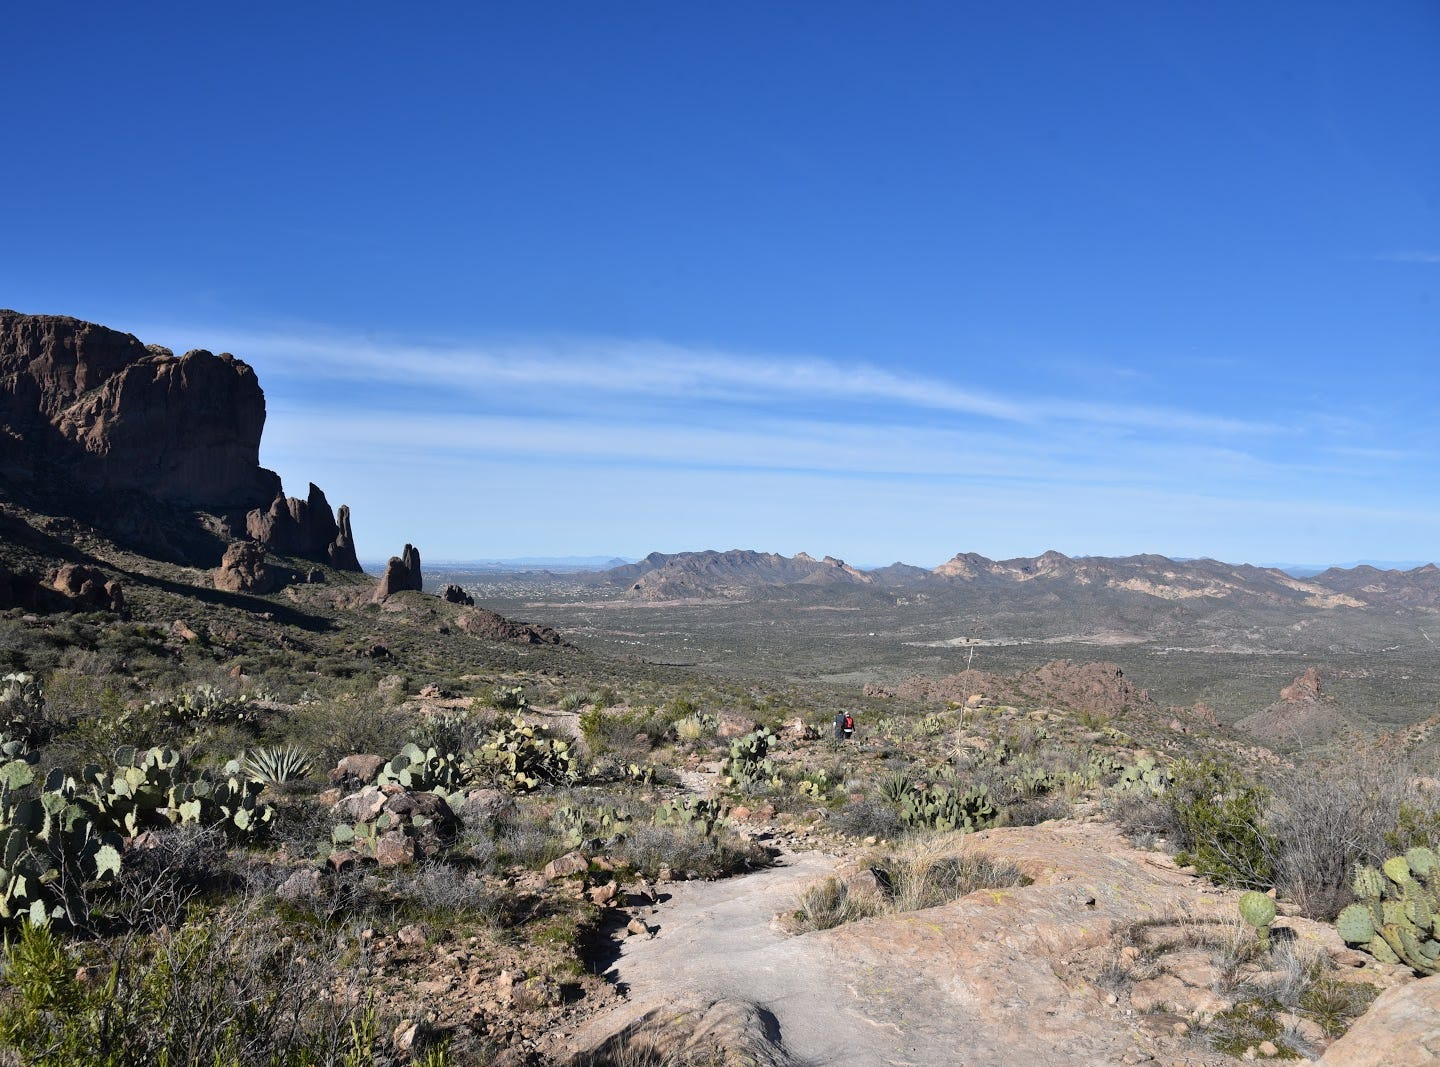 Rock pinnacles (left) above Lost Dutchman State Park.